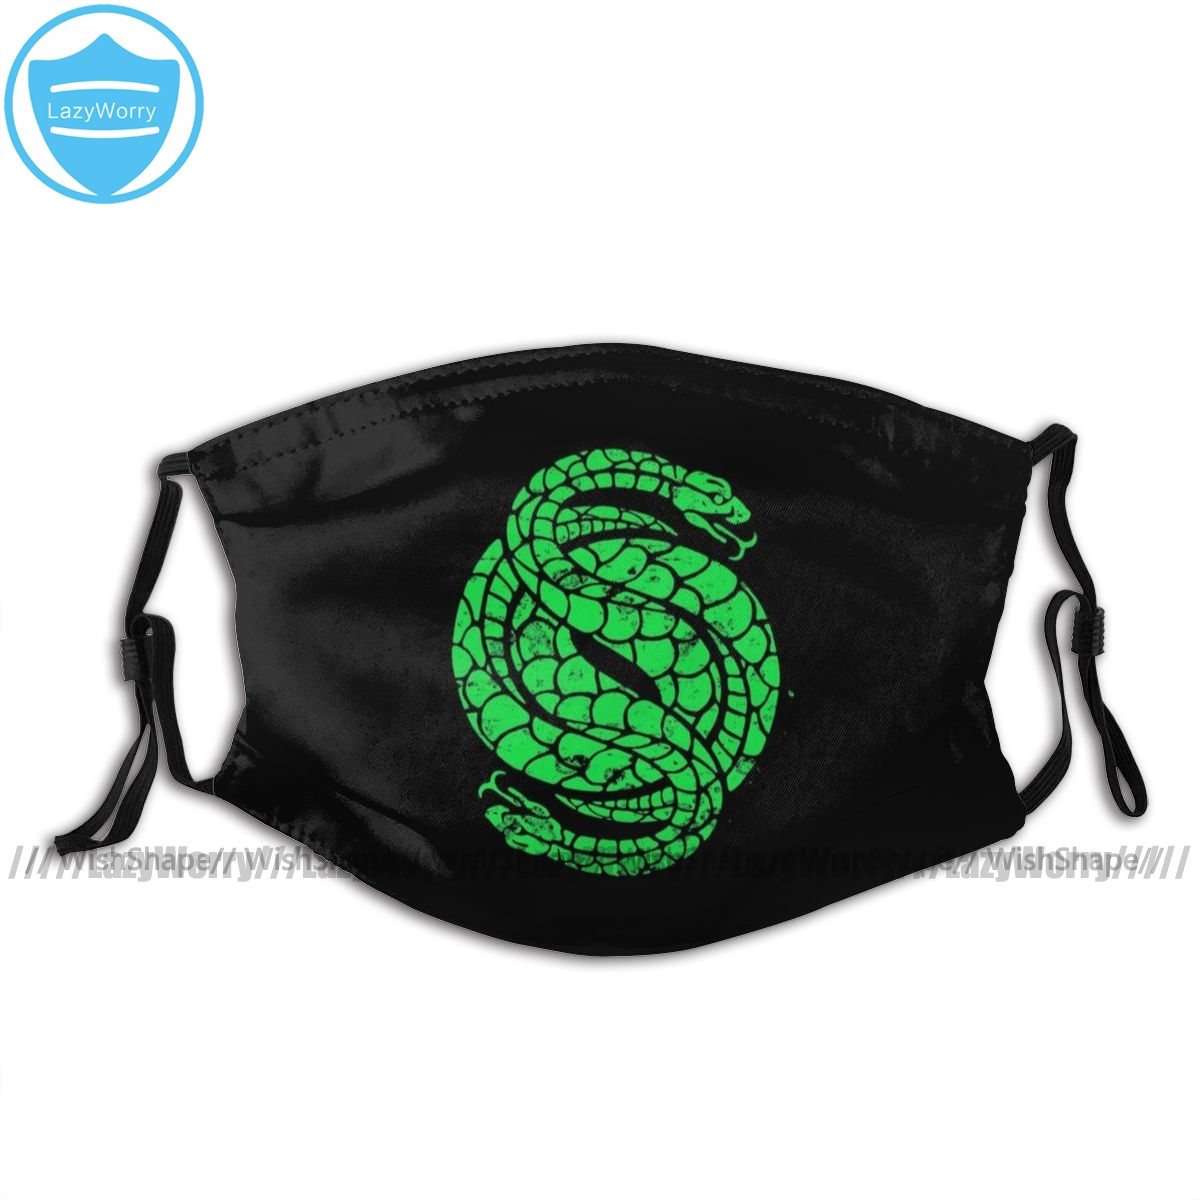 DESTINY 2 Mouth Face Mask Strange Snake Facial Mask Funny Kawai With 2 Filters For Adult